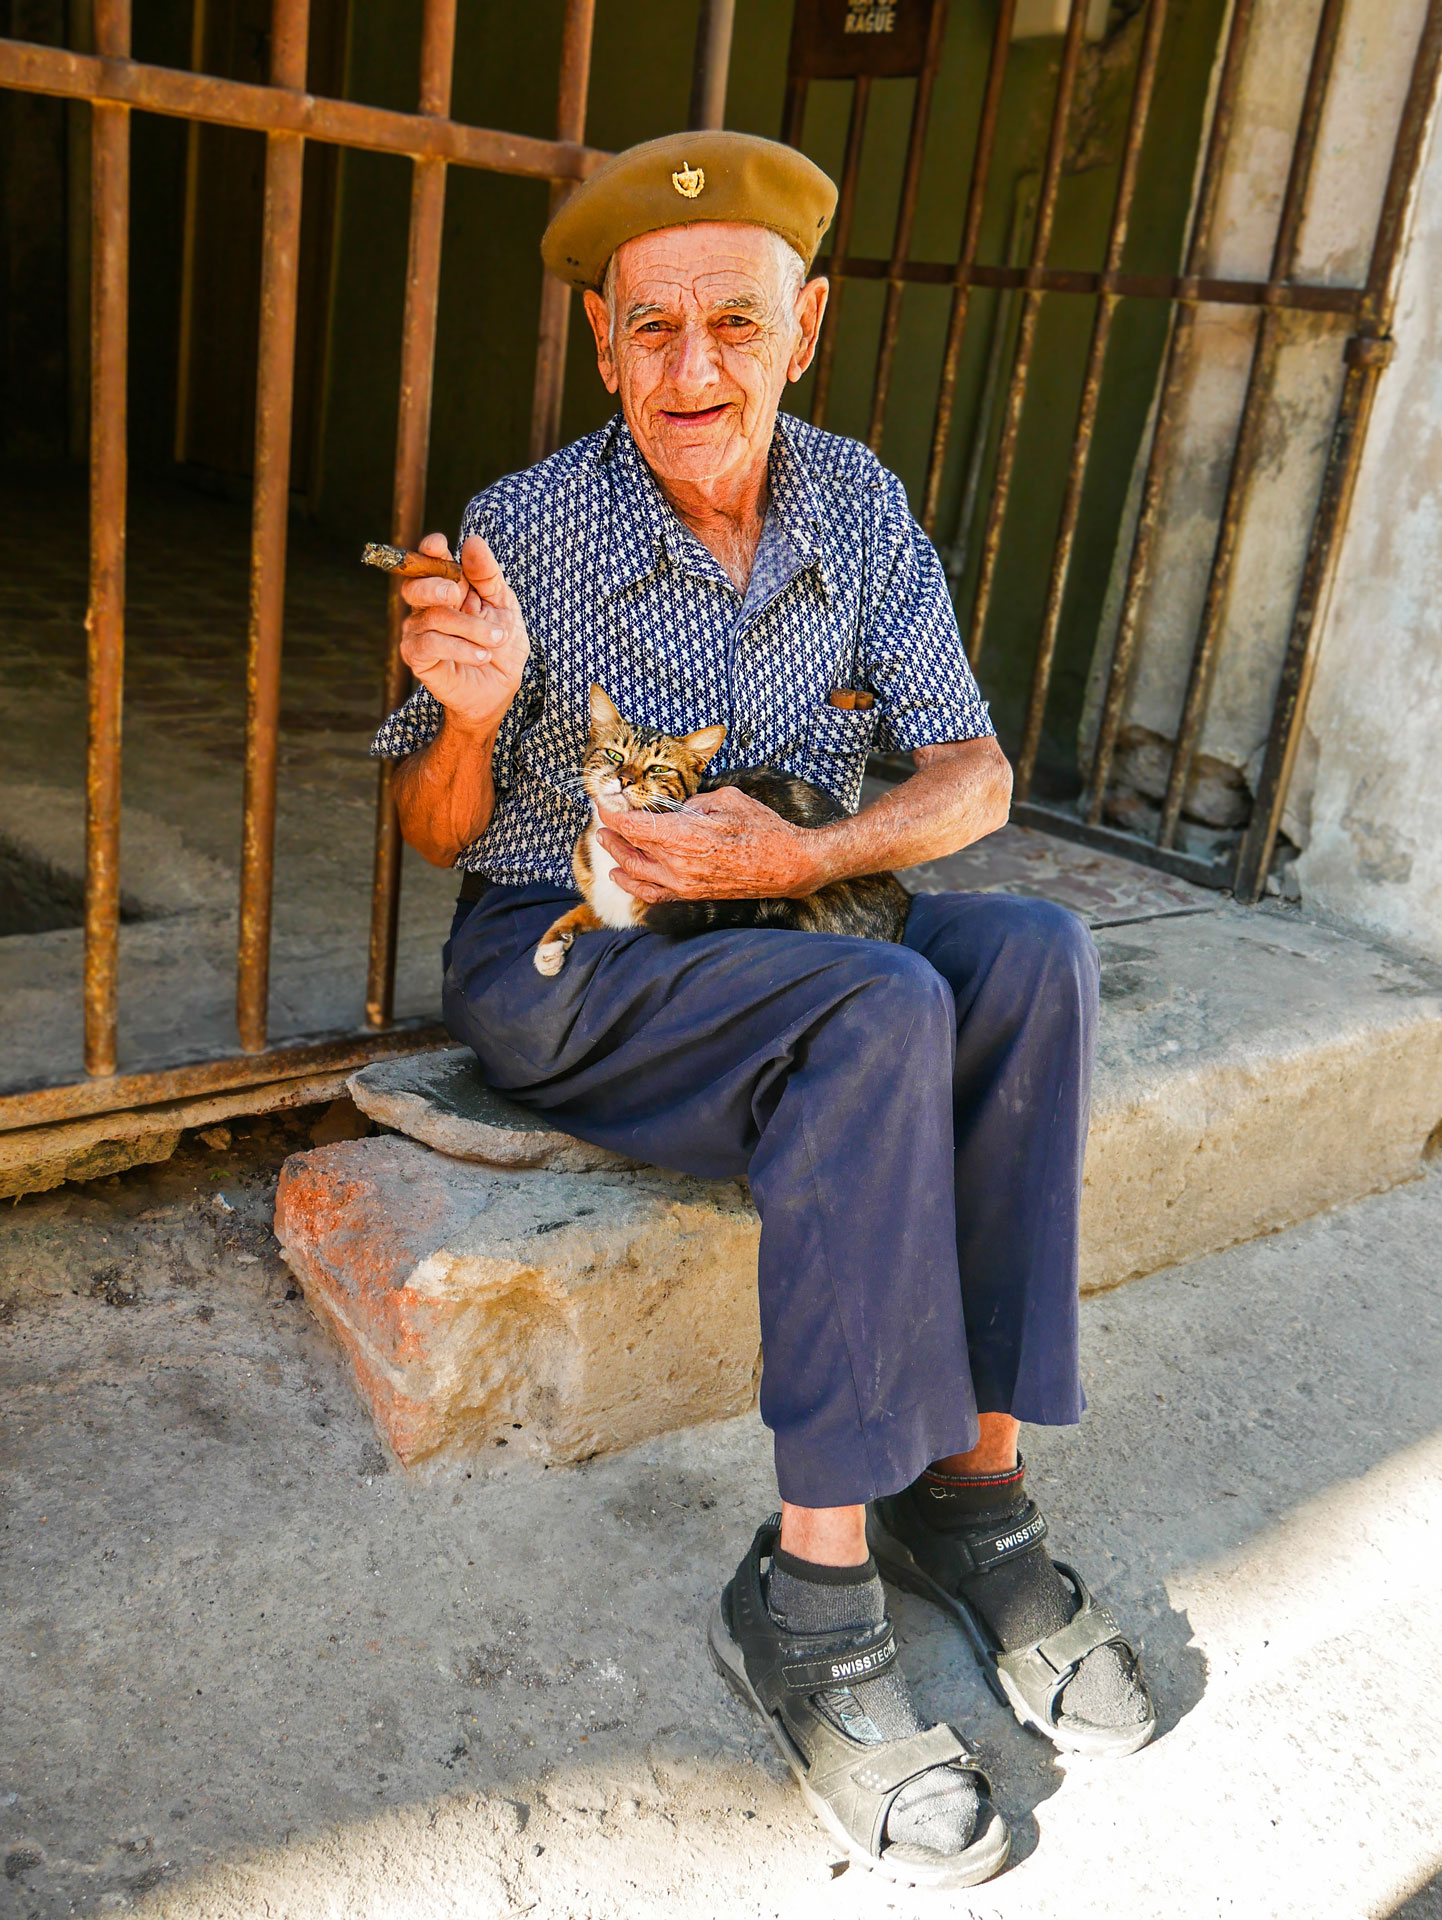 Old man smoking a cigar and petting a cat in street in Havana, Cuba